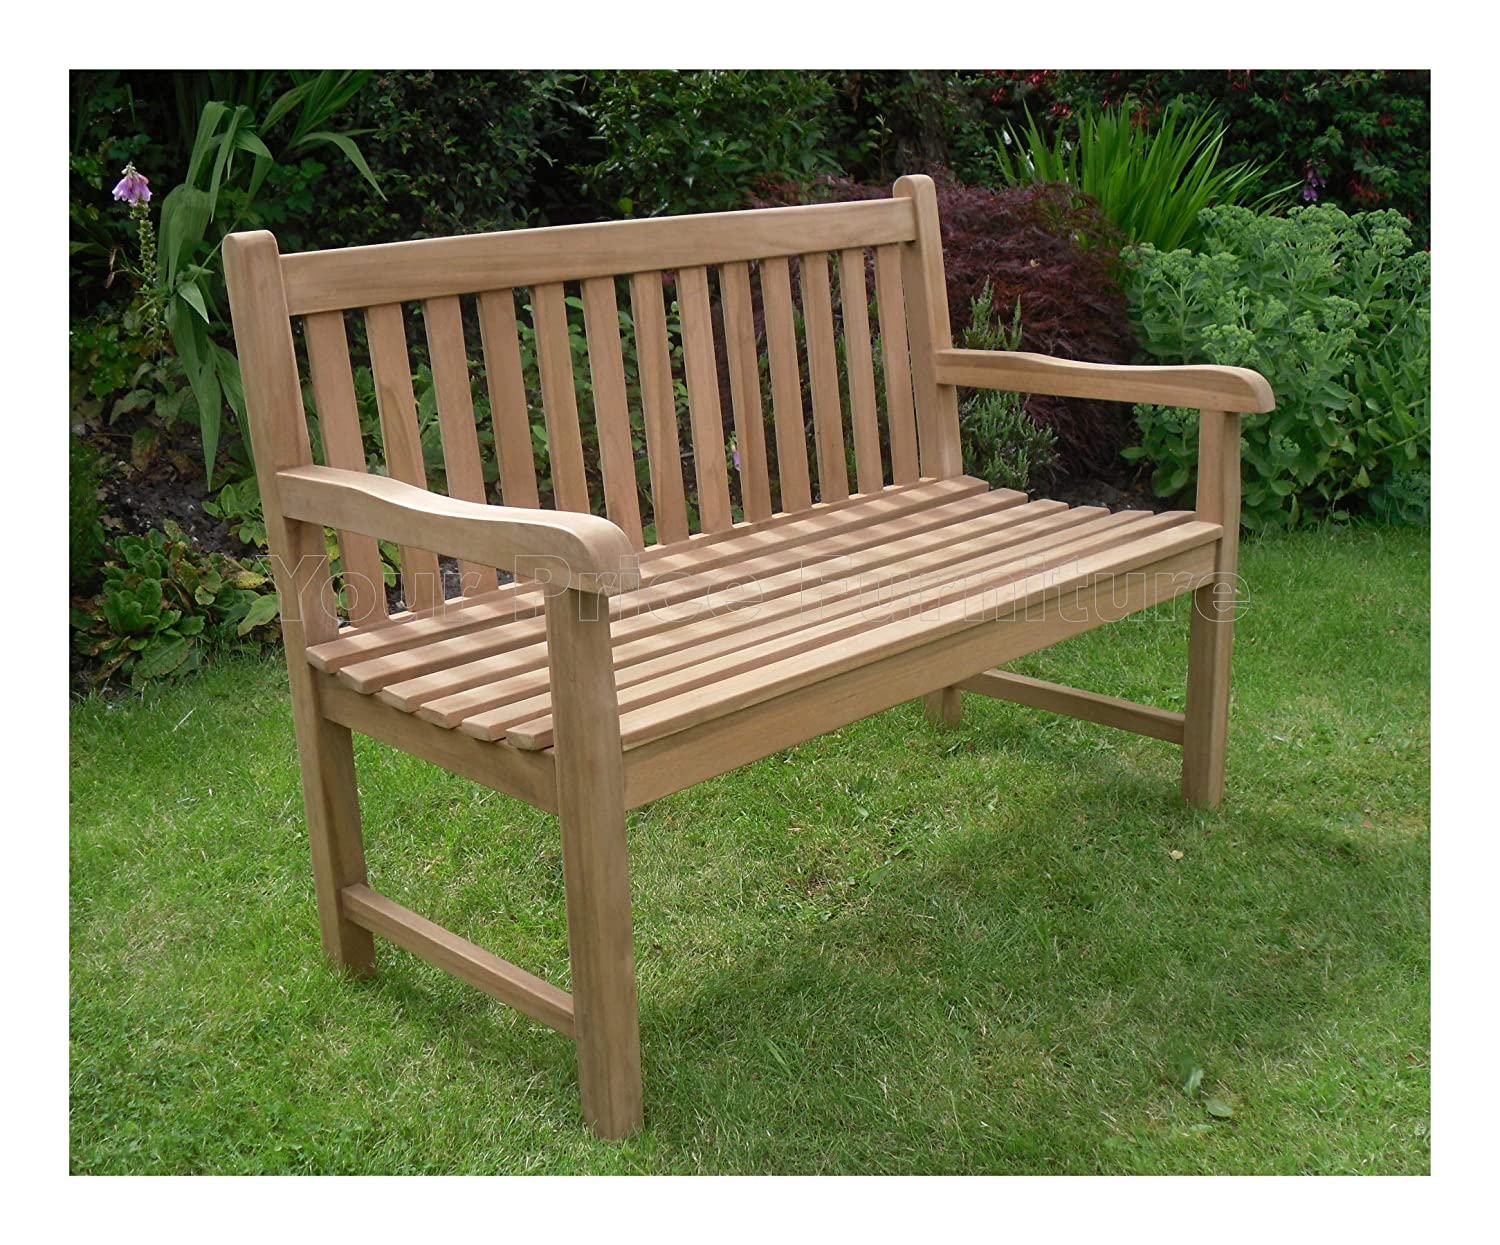 4ft 120cms 1.2m Chunky Teak 2 Seat Garden Park Bench Java Garden Furniture For Your Patio 1.2 metres Your Price Furniture